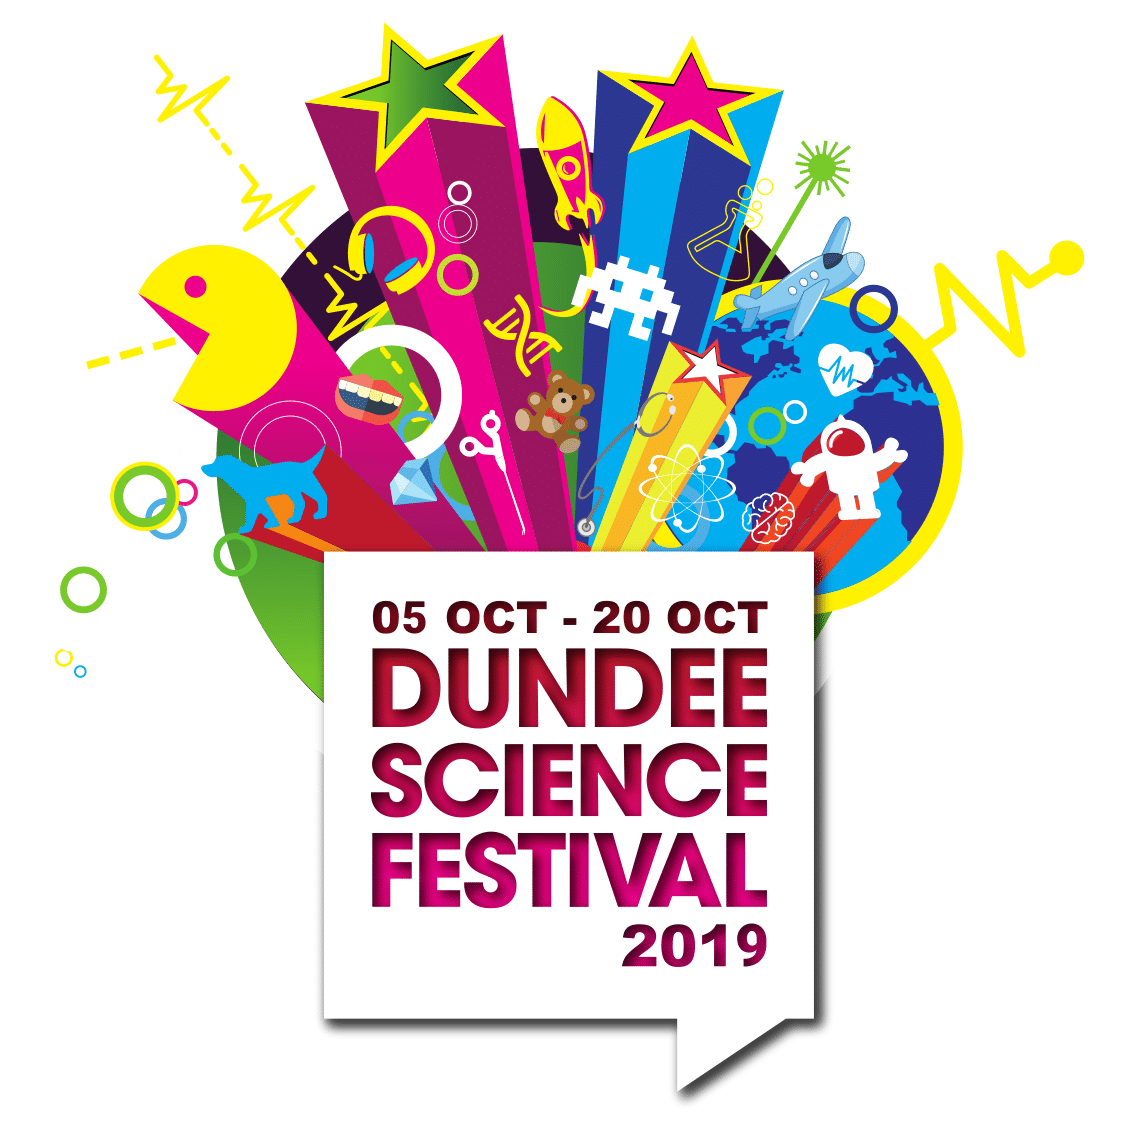 Dundee Science Festival 2019